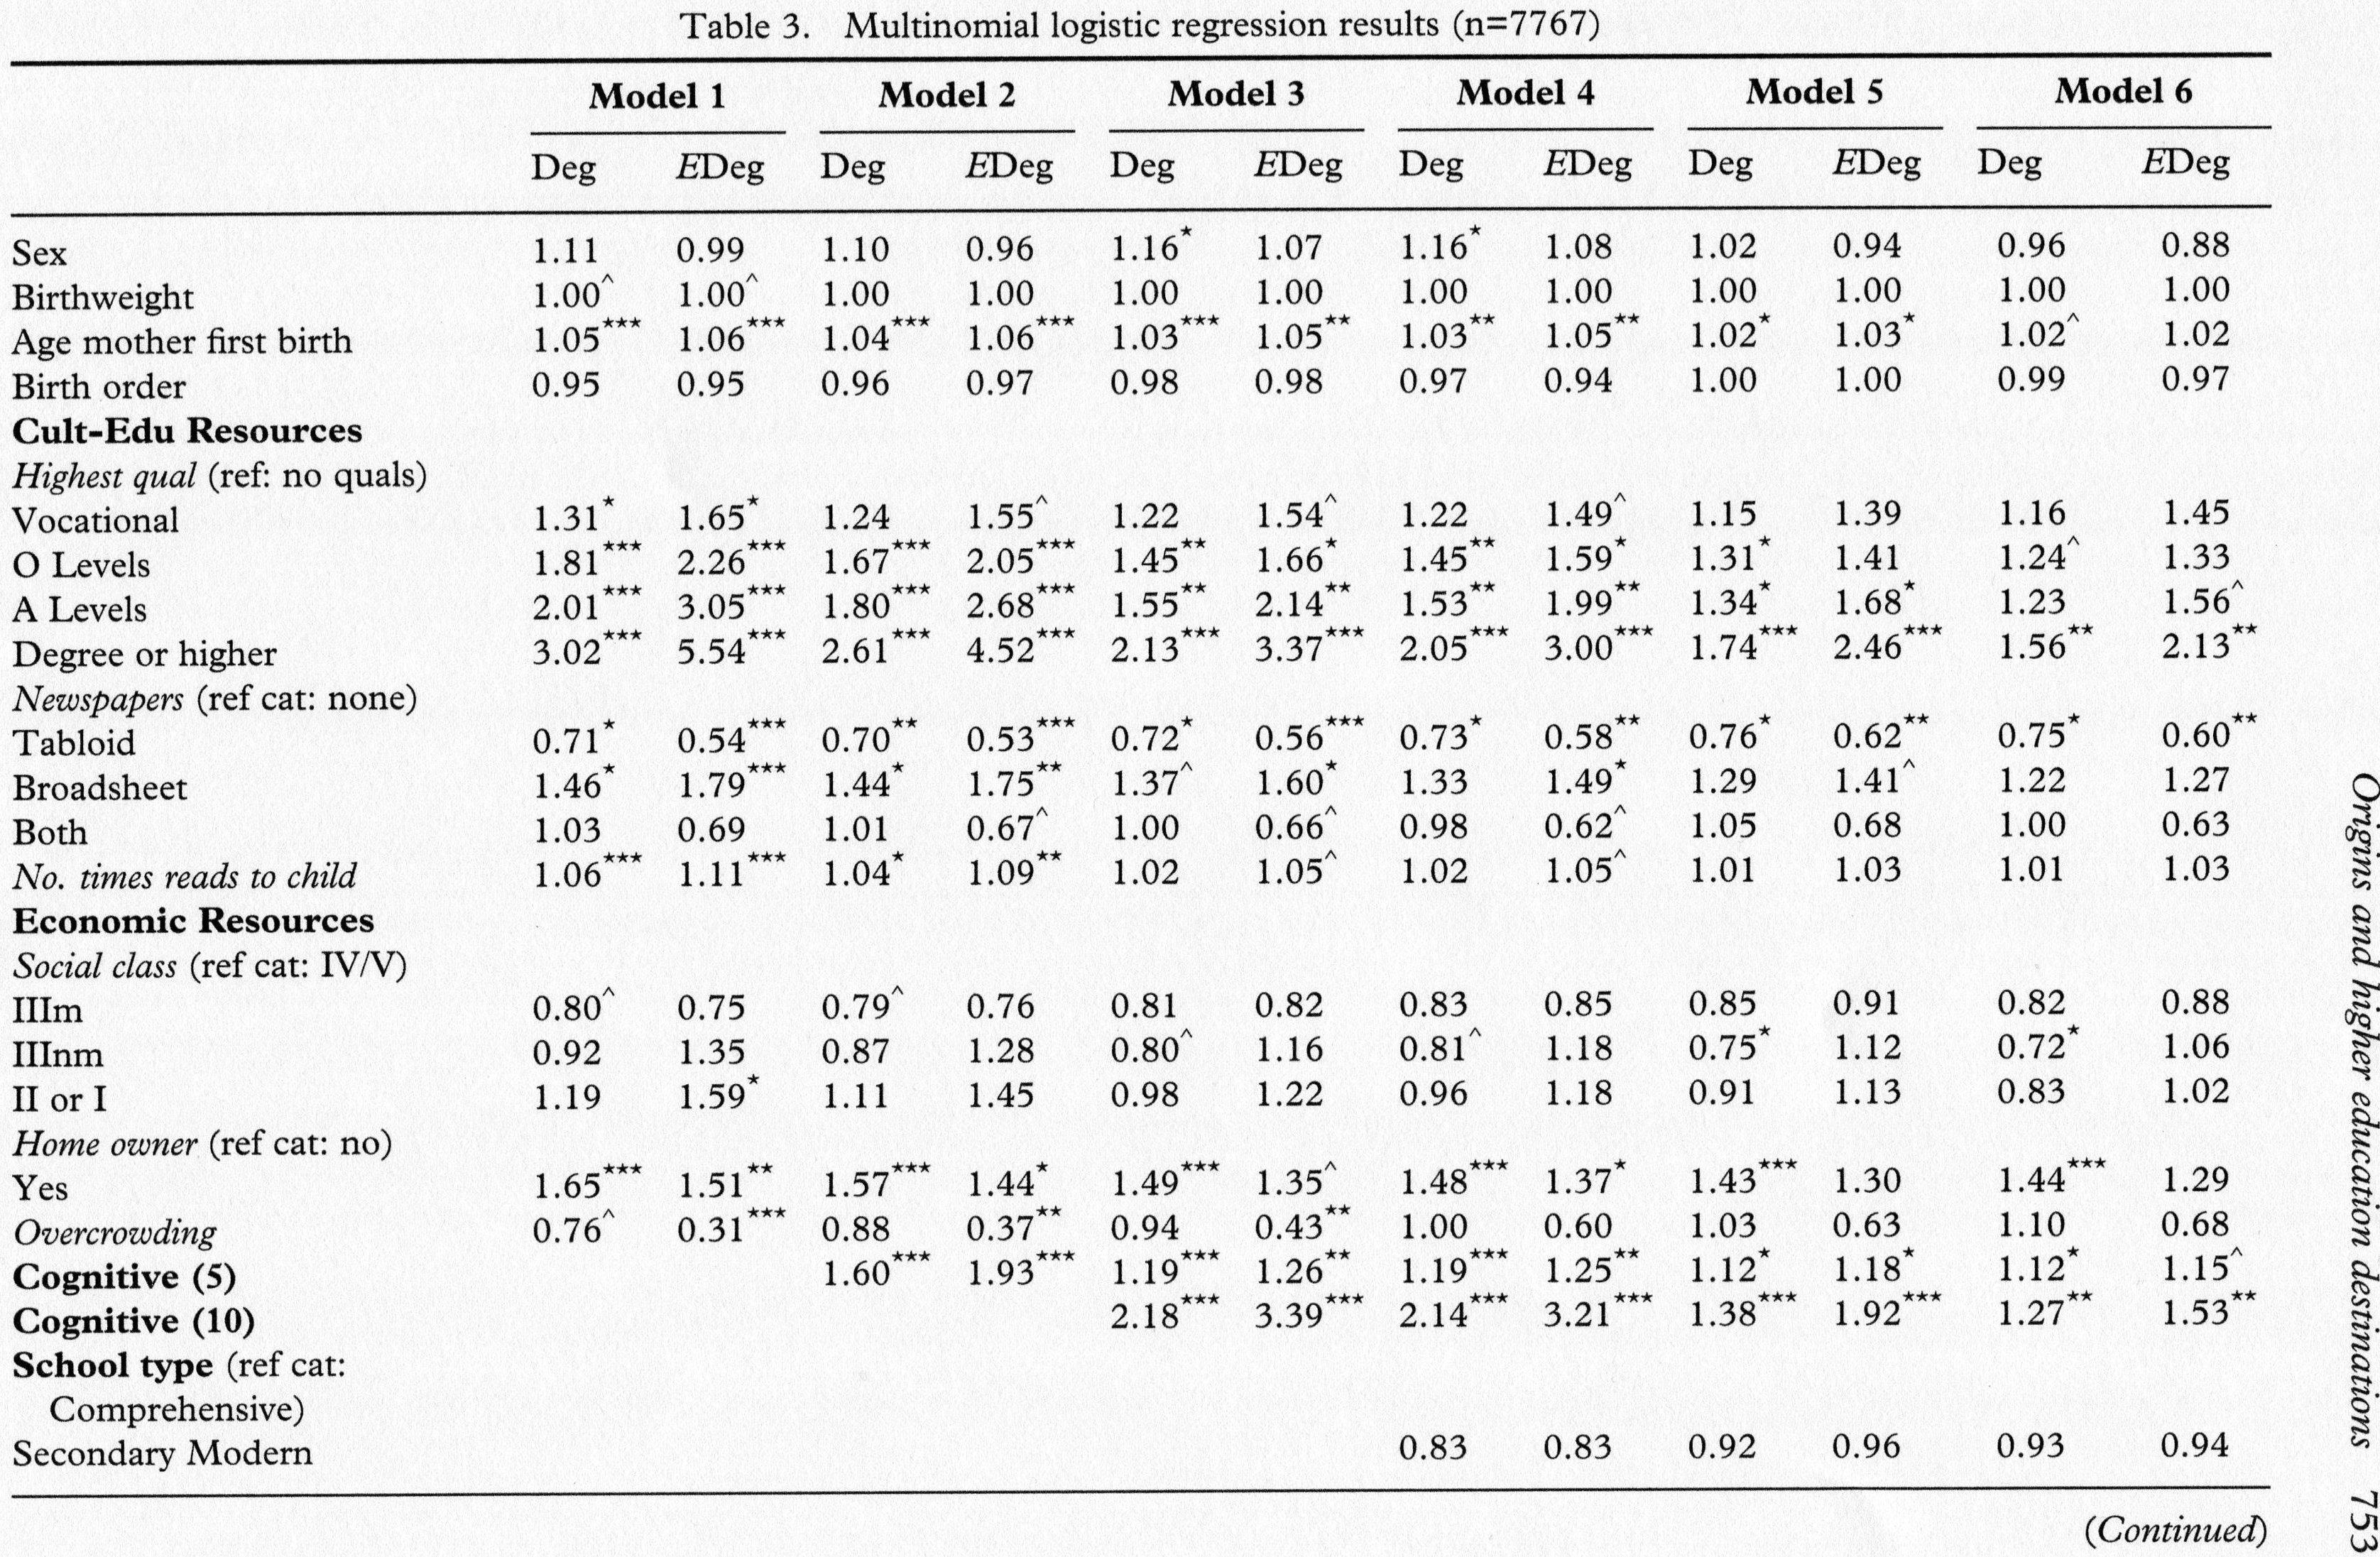 socmob another table 753 below shows multinomial logistic regressions predicting the odds of achieving an elite degree or an ordinary degree compared to no